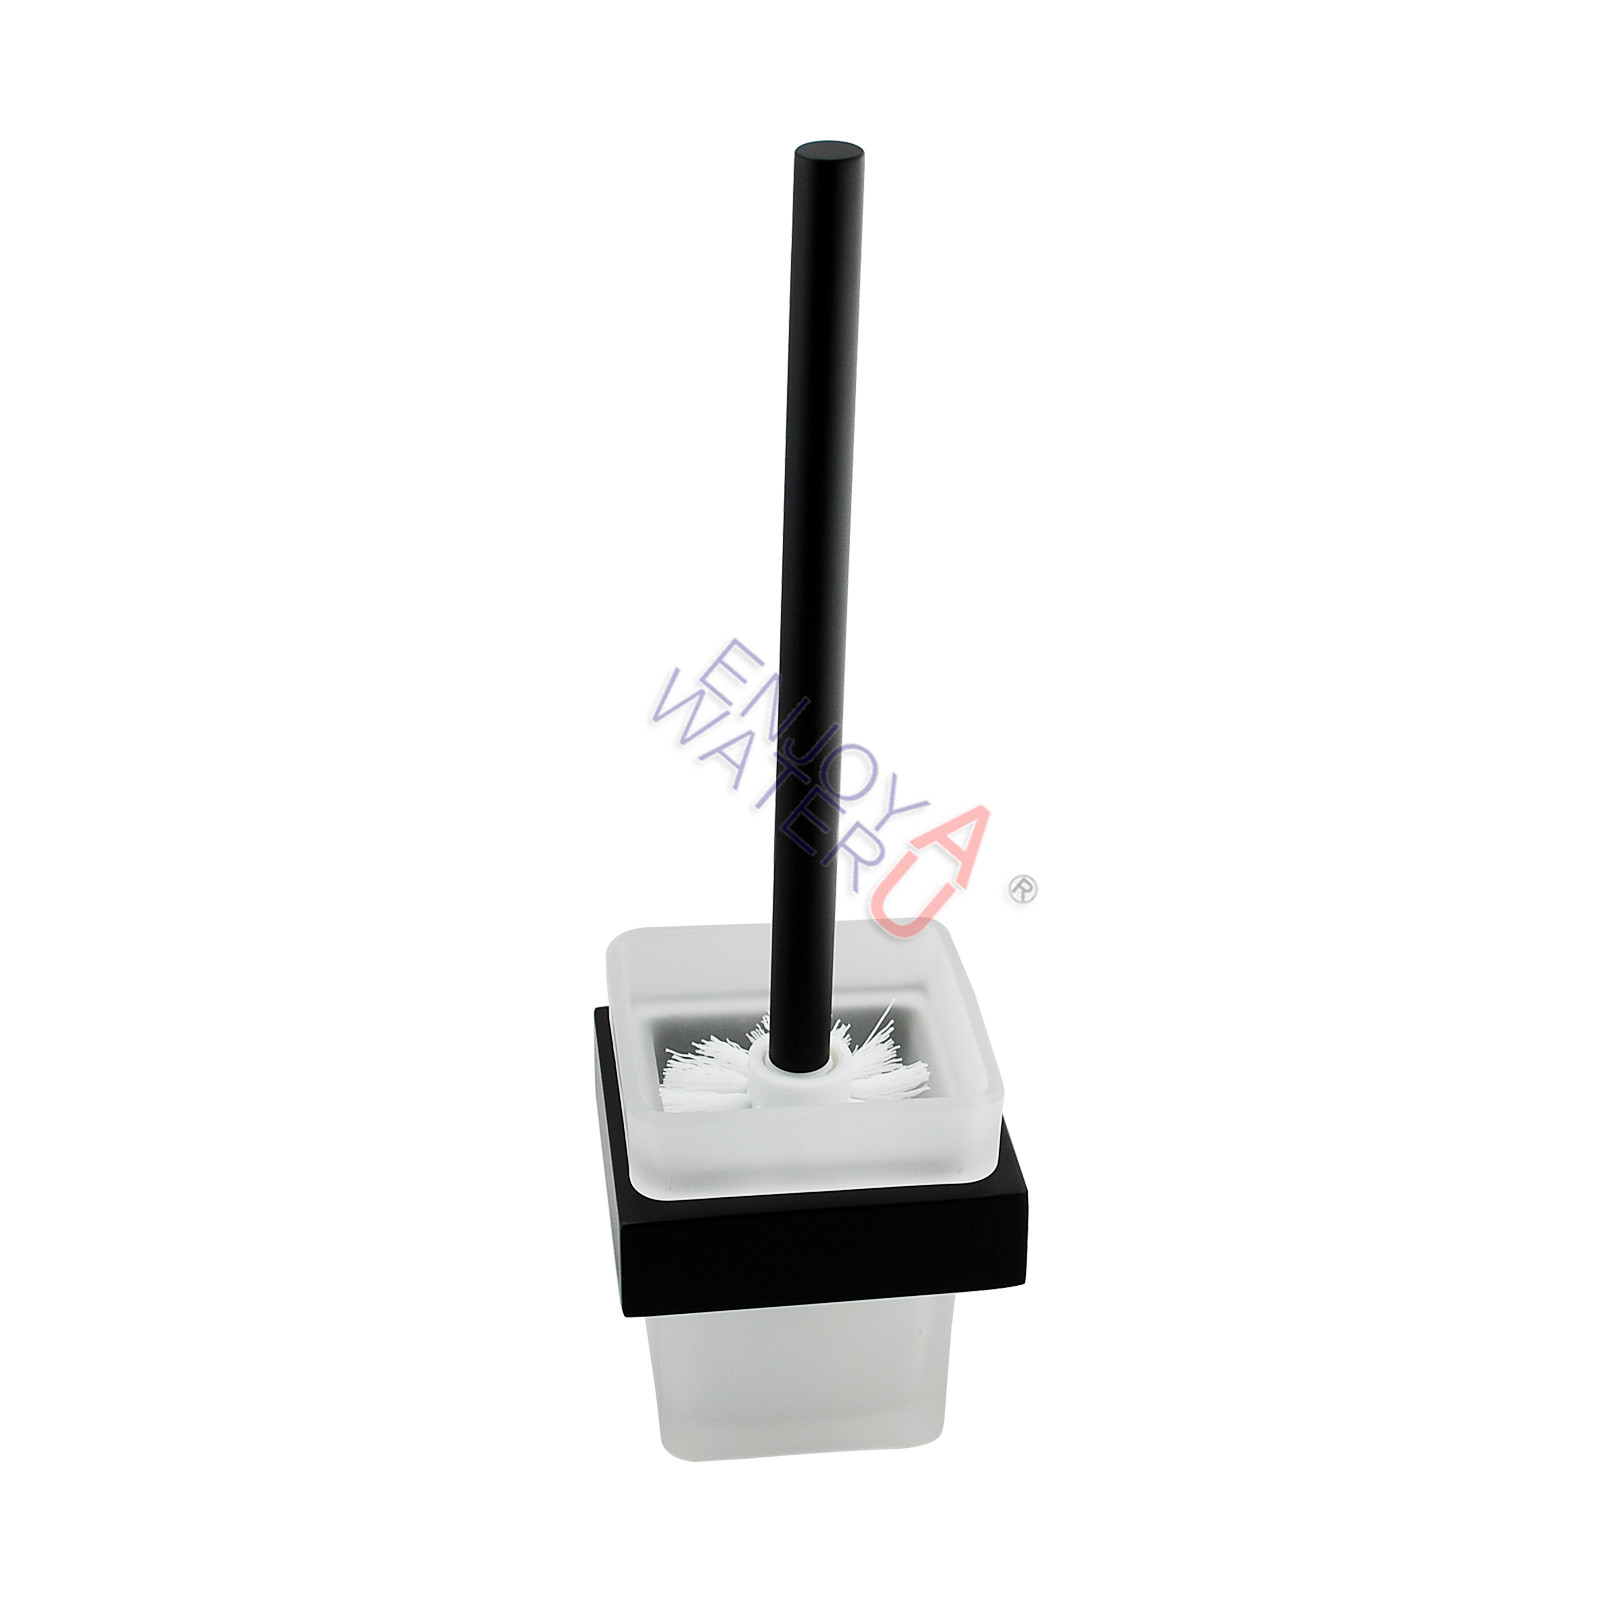 Black Ceramic Toilet Paper Holder 600 800mm Double Single Towel Rack Rail Holder Ss304 Black